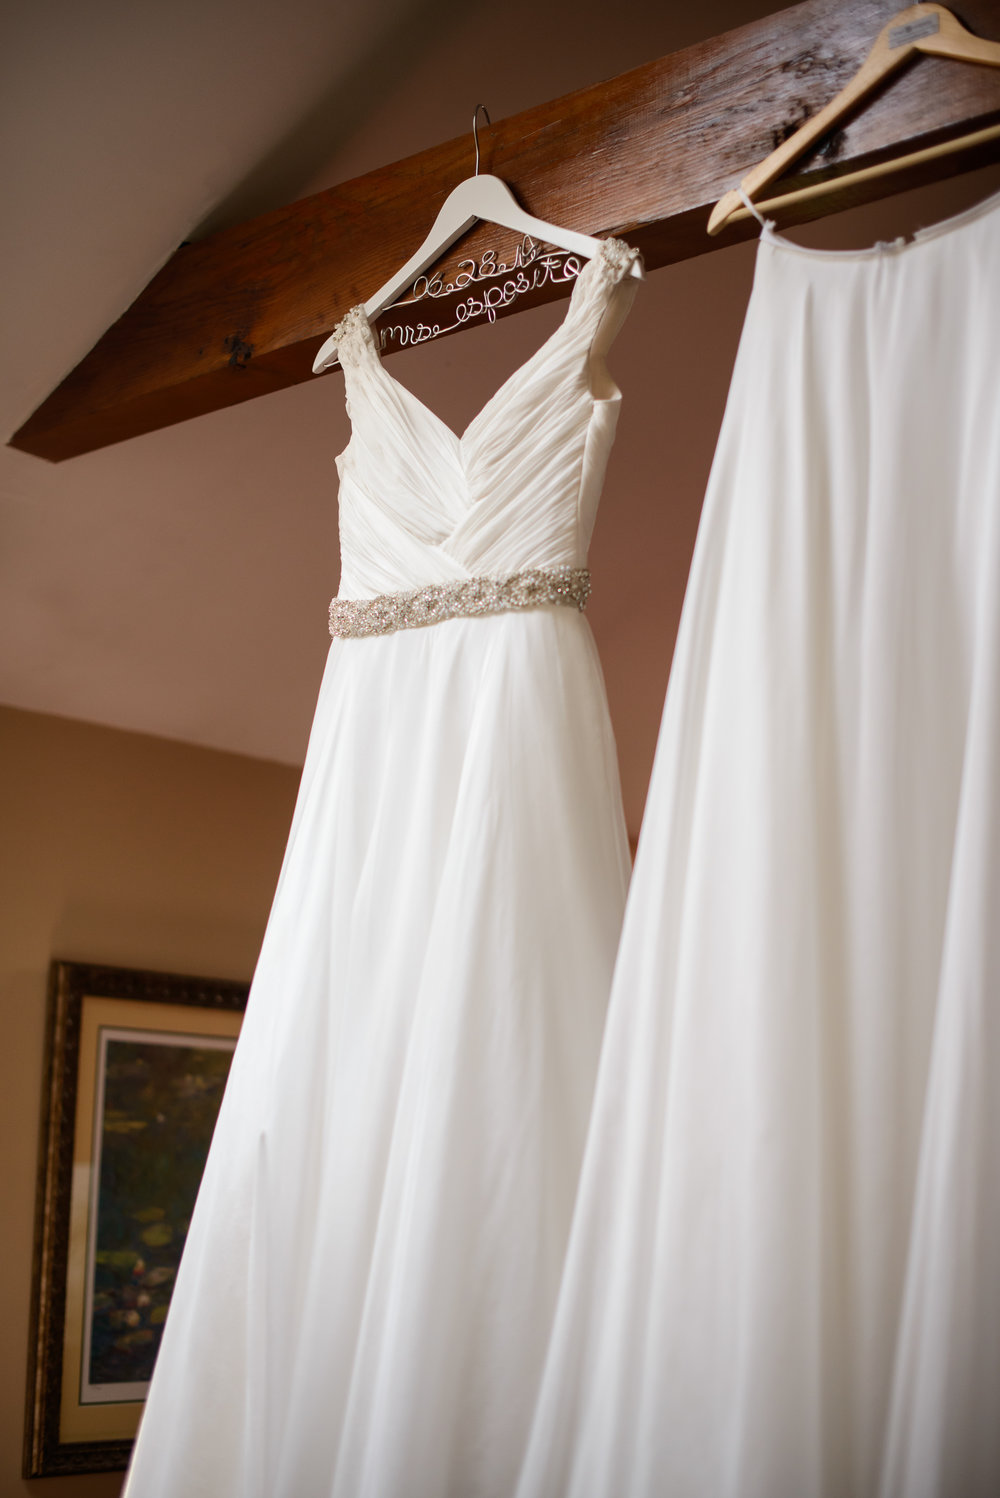 Katie M - Custom Wedding Dresses by AvailCo  (1 of 60).jpg